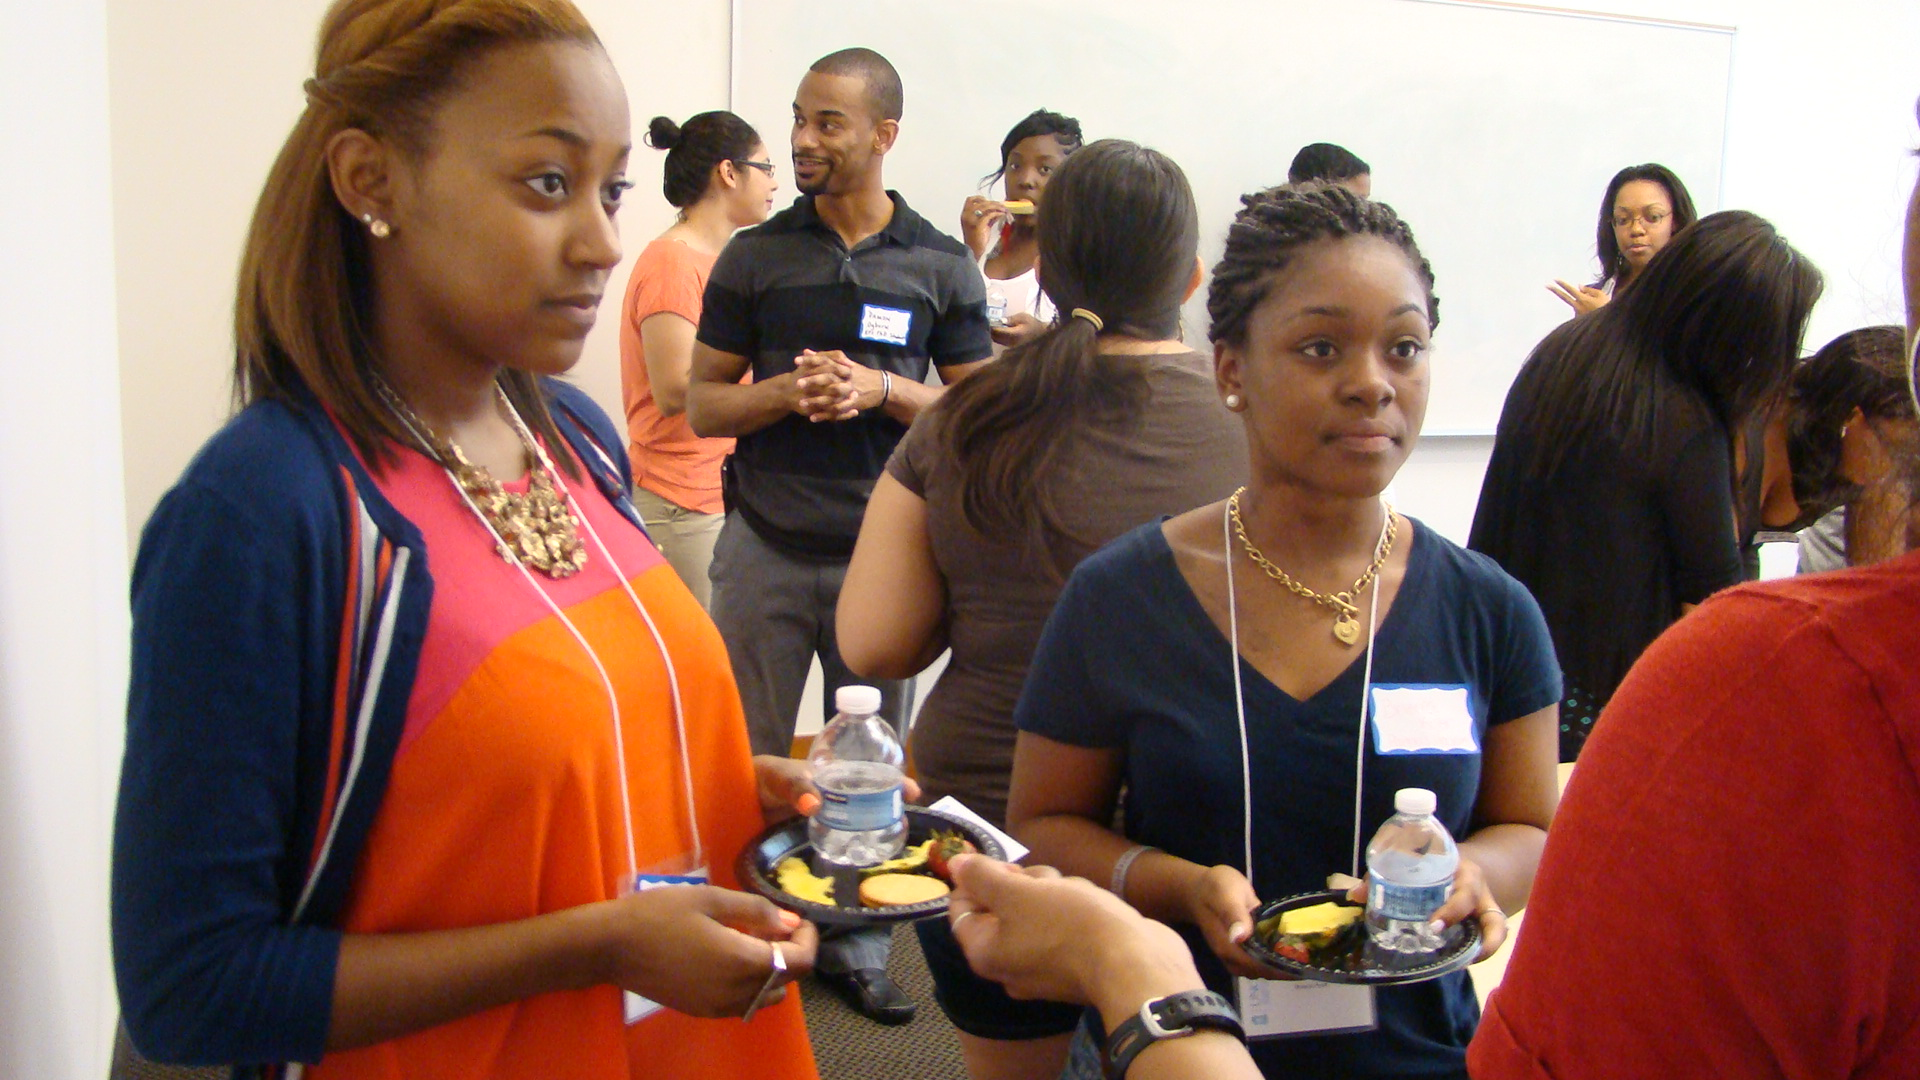 Students mingle at the 2012 Partnership Program Networking Event.